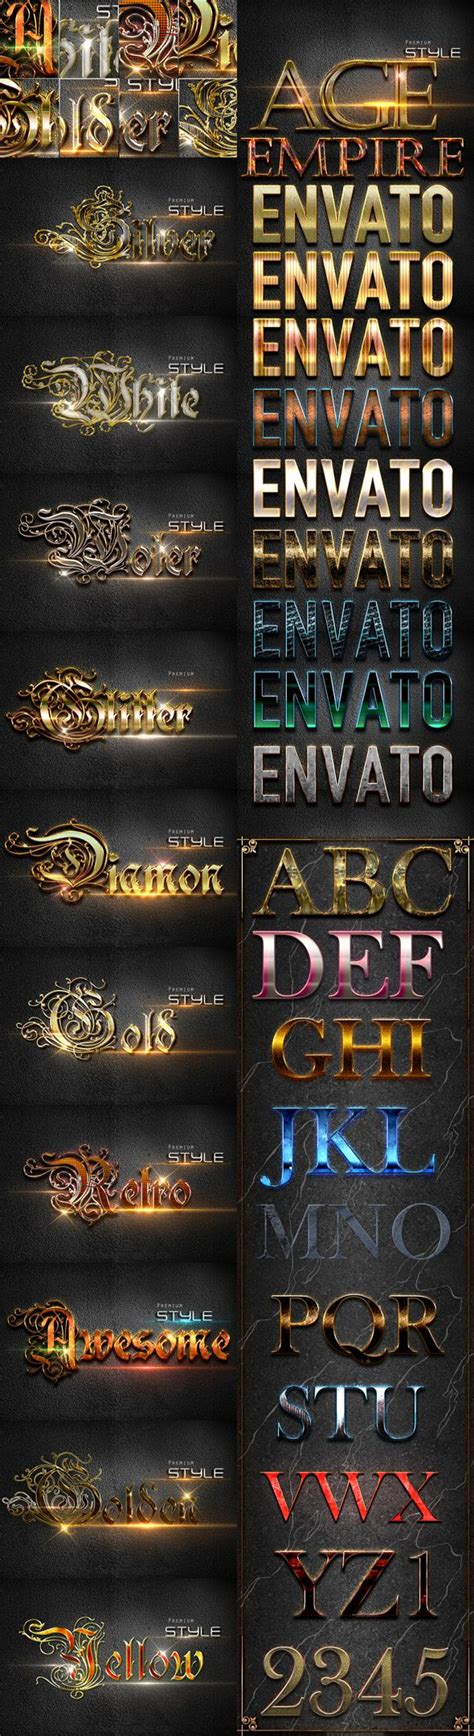 pin by adam kriyus on psd actions 3d text photoshop